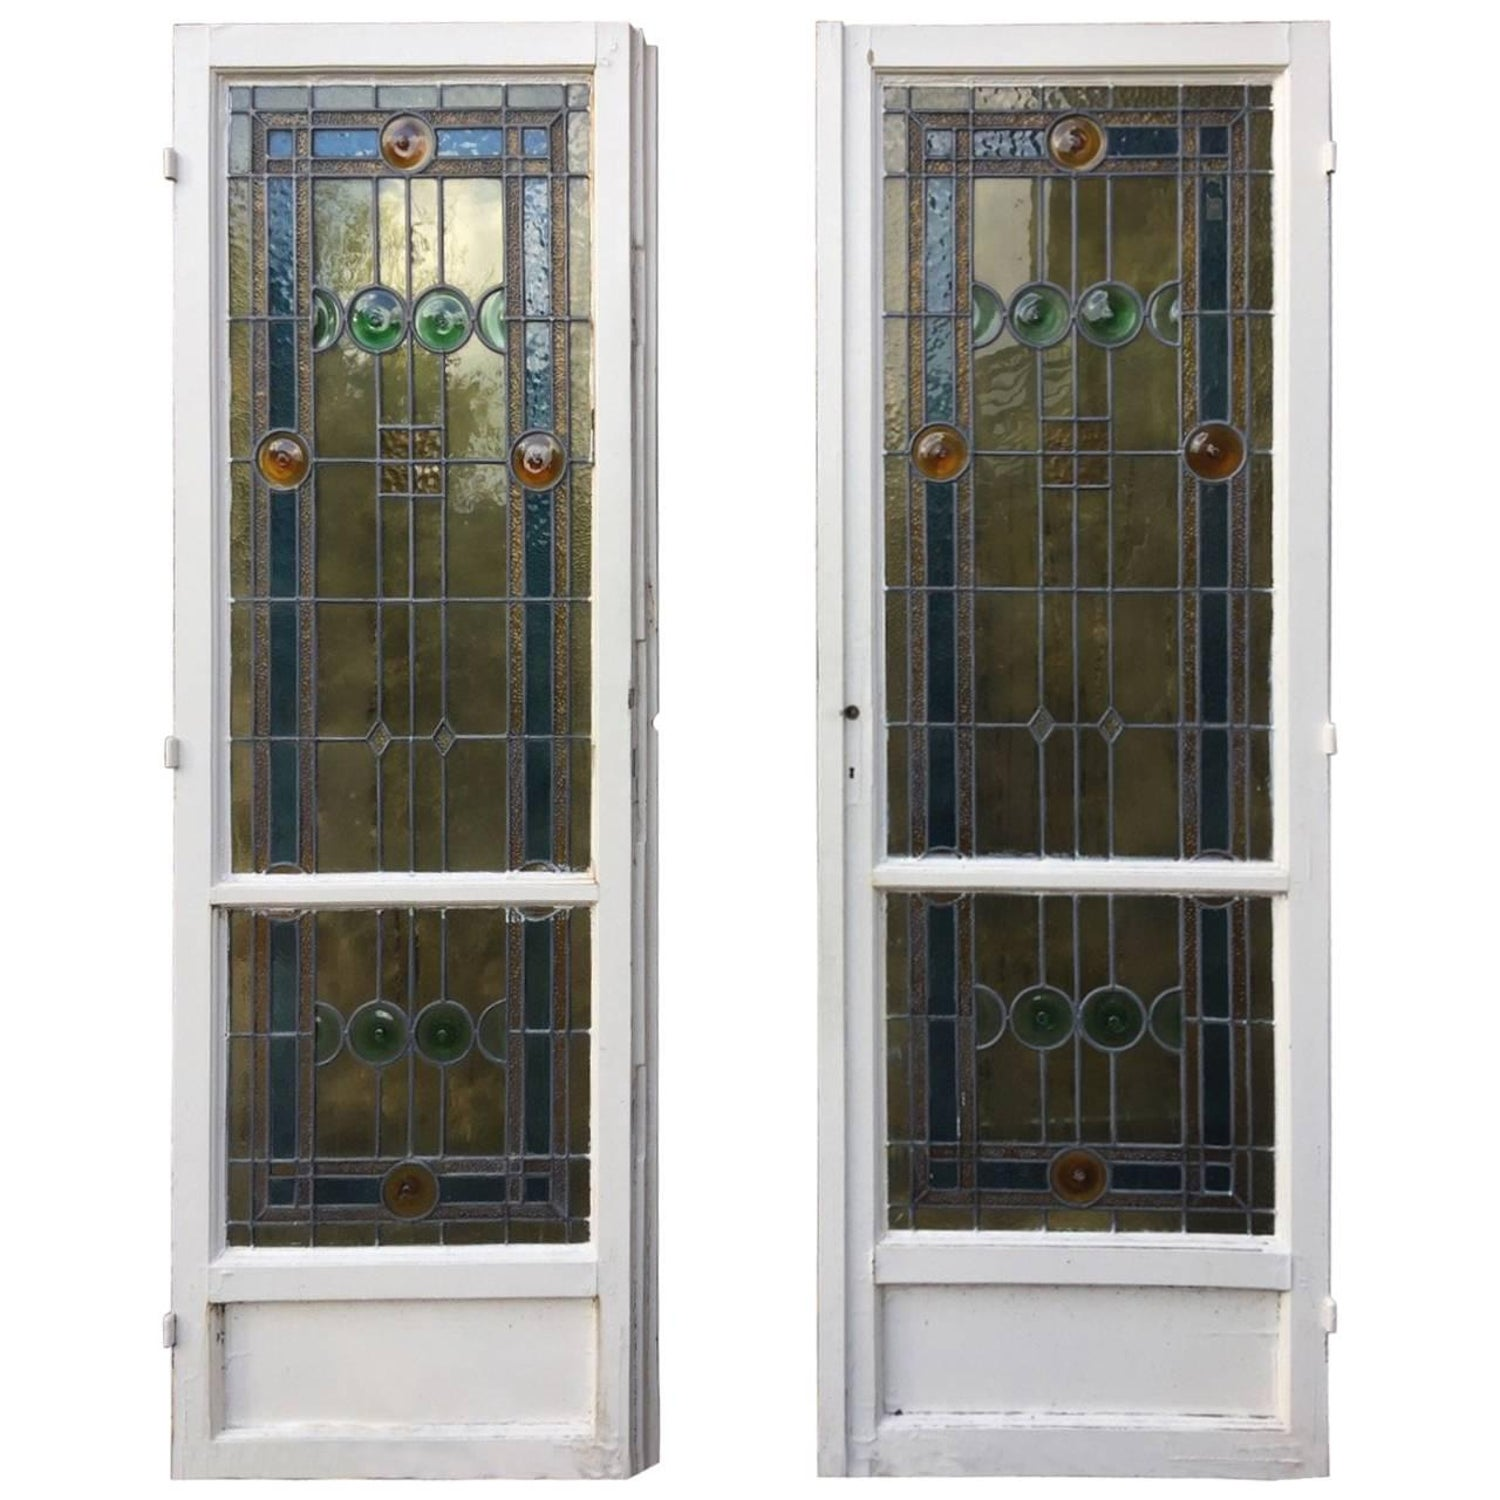 Unique French Art Deco Stained Gl Doors And Windows Set 1920s At 1stdibs